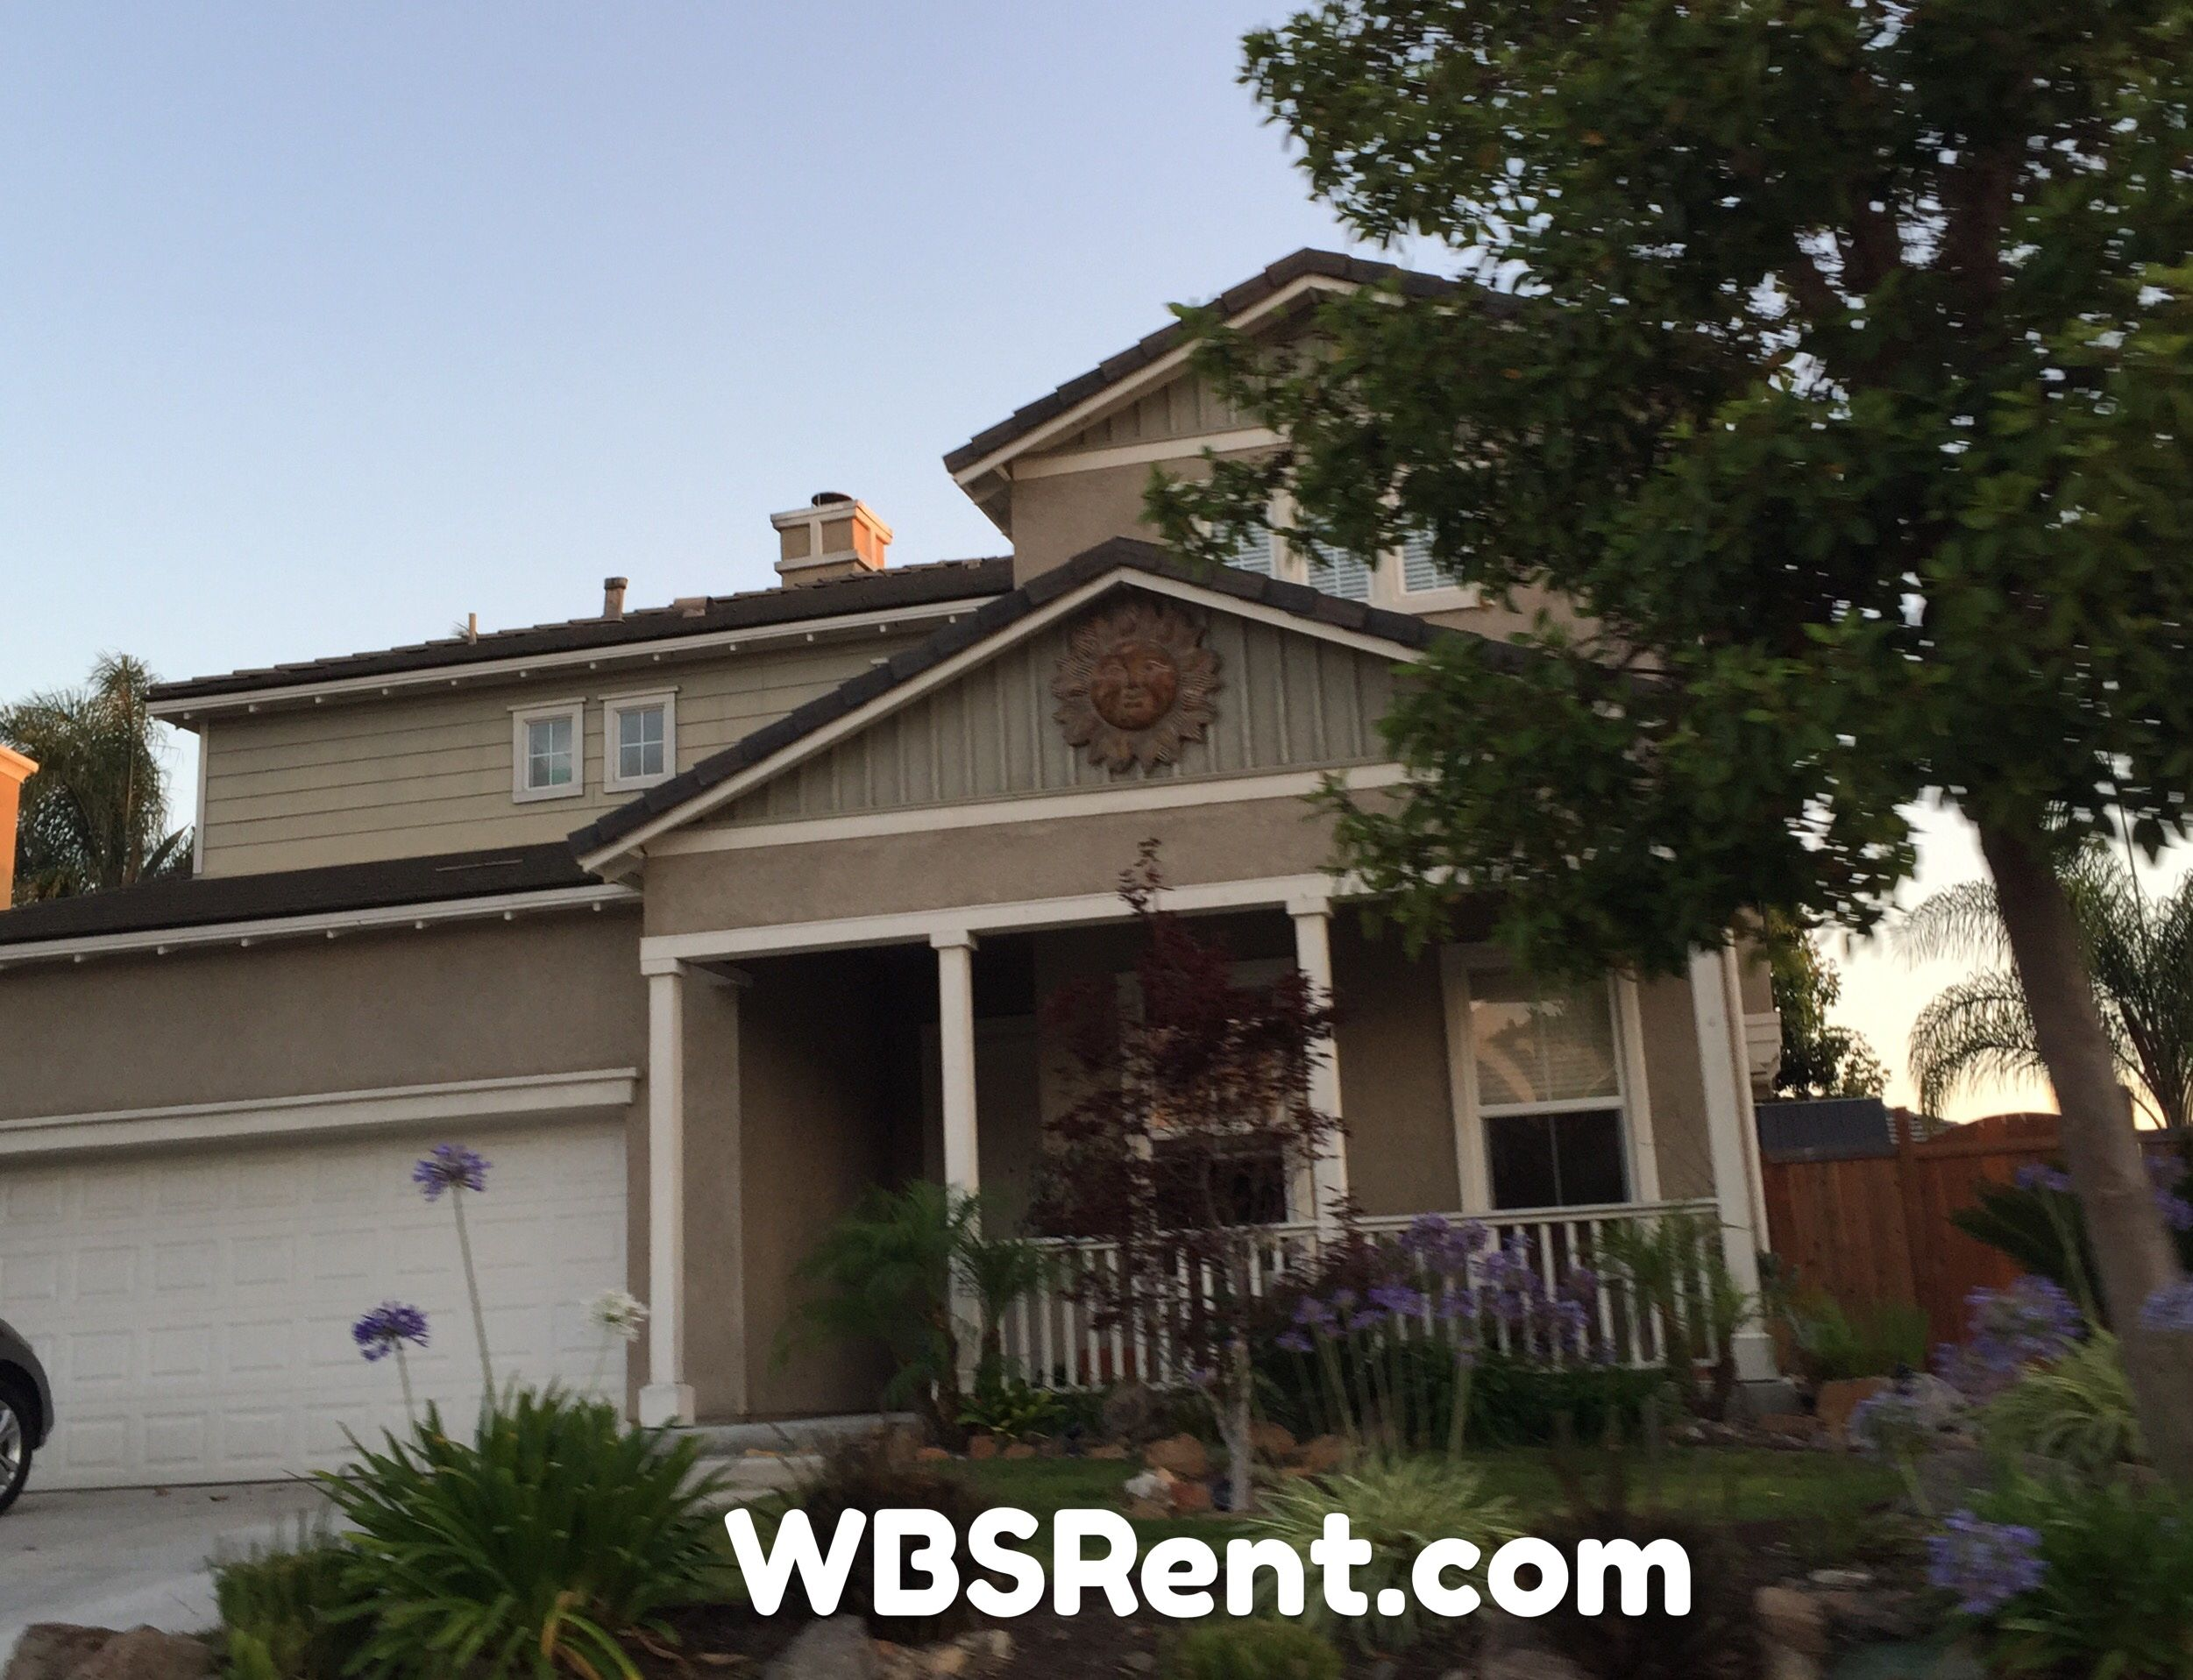 3 bedroom home for sale in fallbrook california